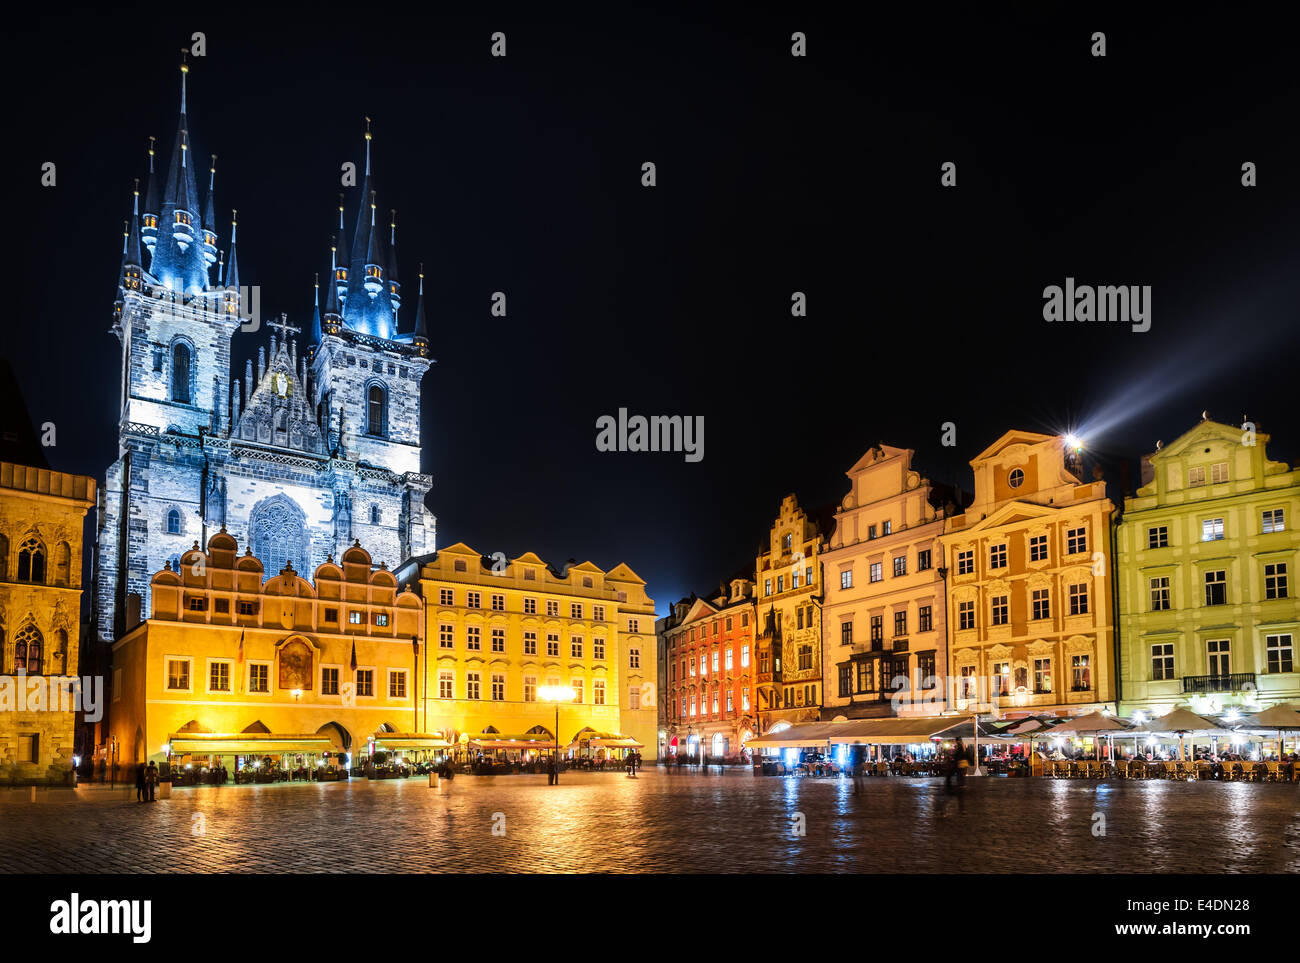 Image Taken At Night With One Of The Prague Symbols Church Of Our